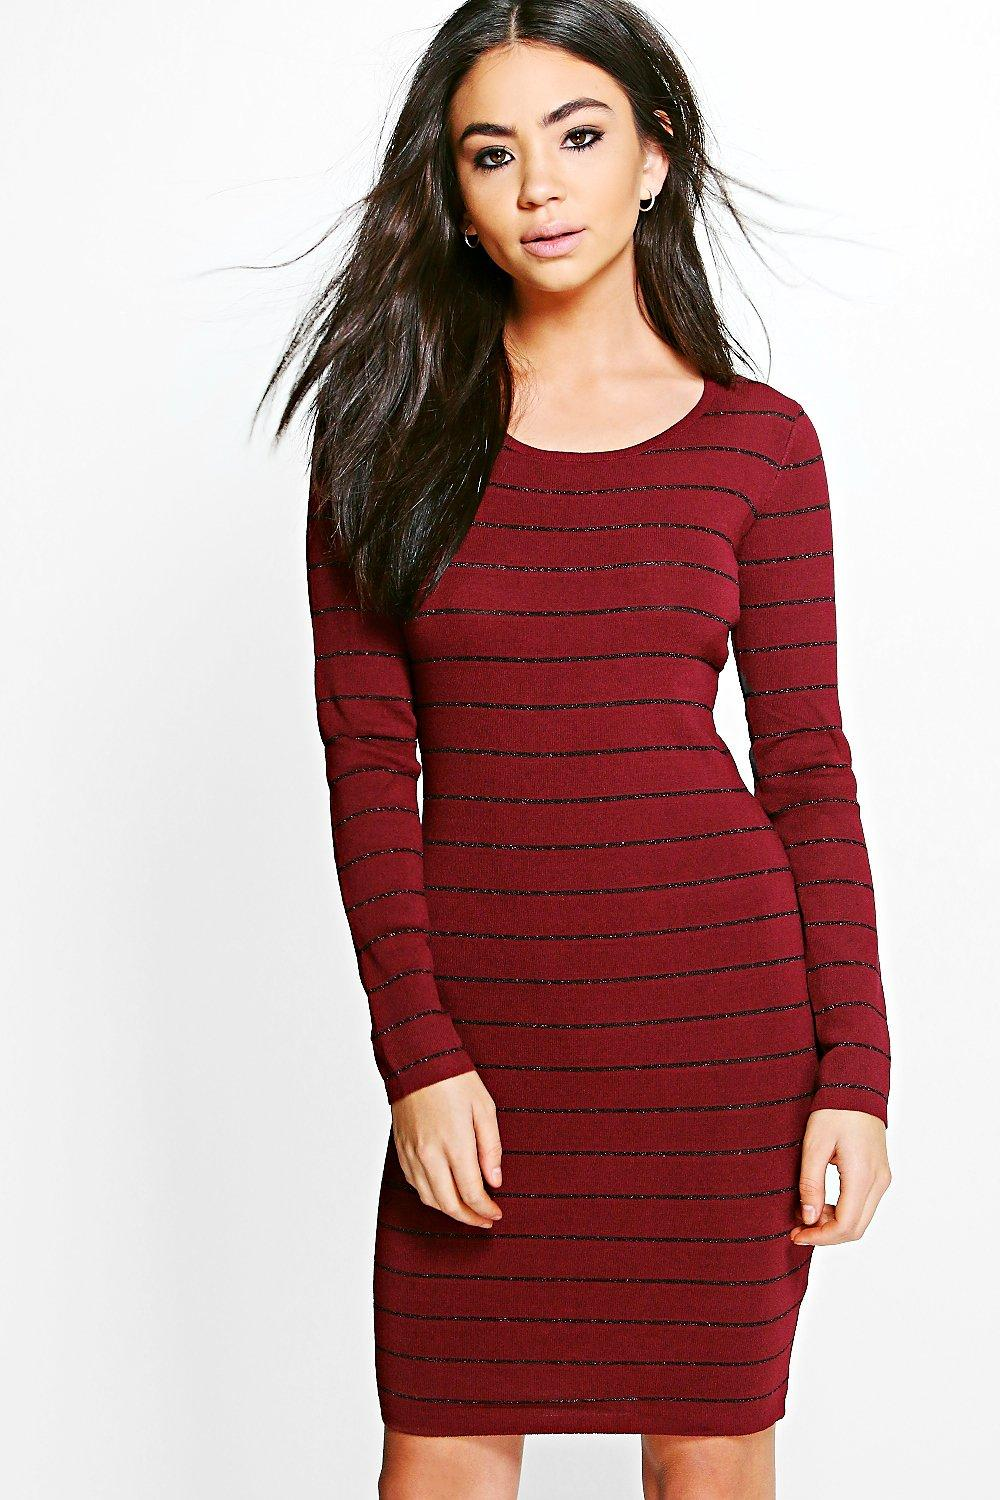 Ribbed Long Sleeve Bodycon Knit Dress  wine